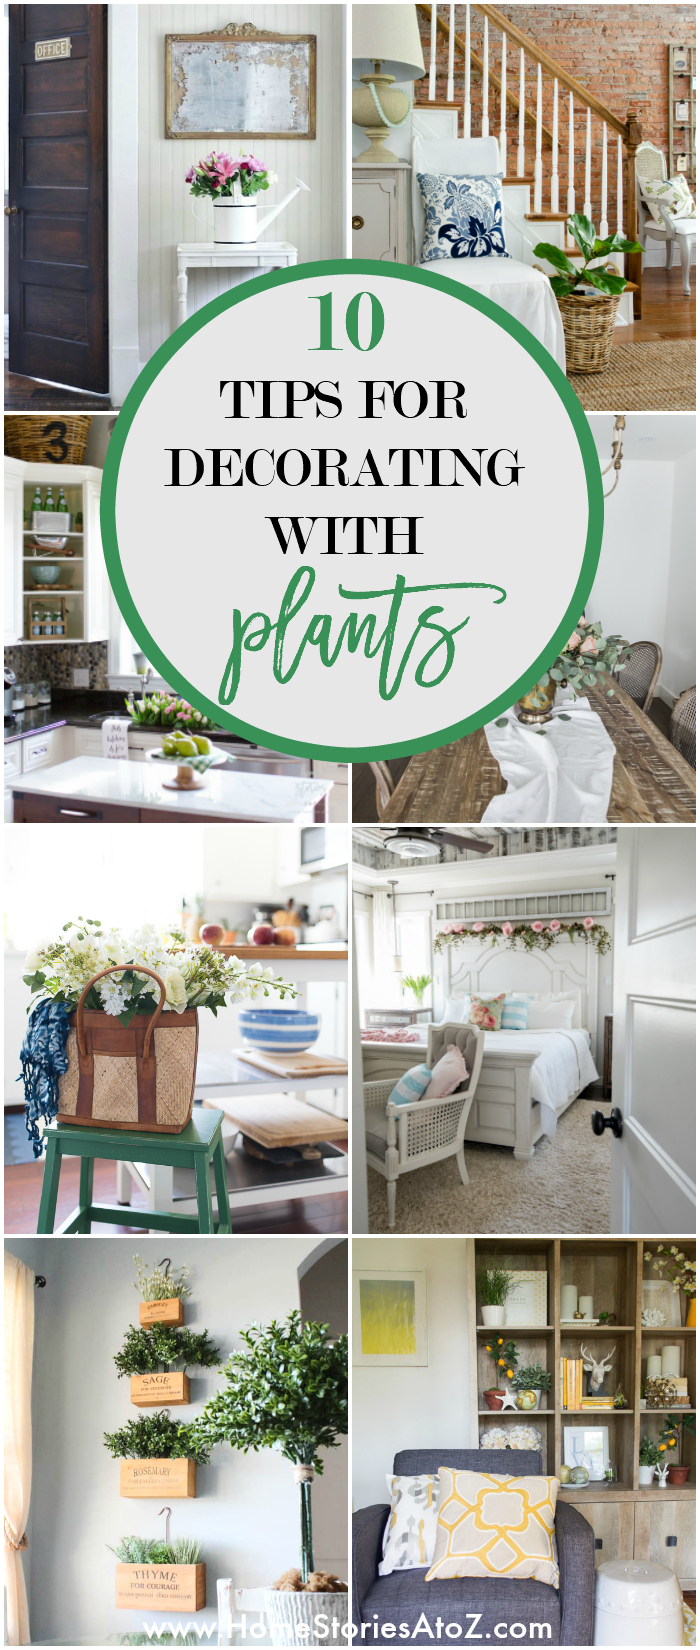 10 Tips For Decorating With Plants And Greenery